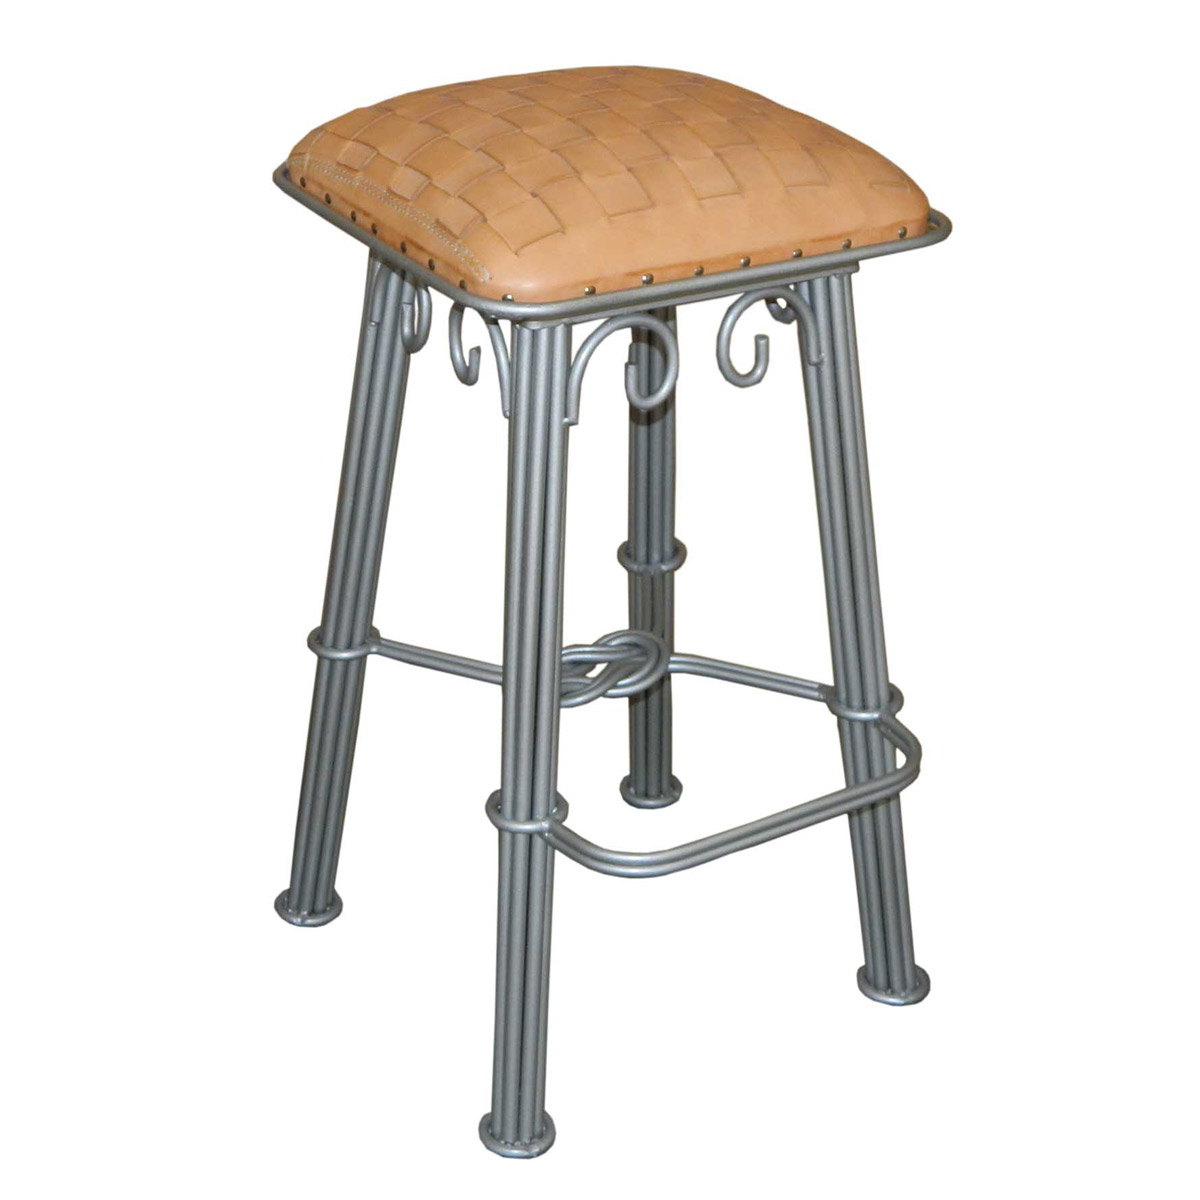 Natural Braided Leather Barstool - Silver Iron